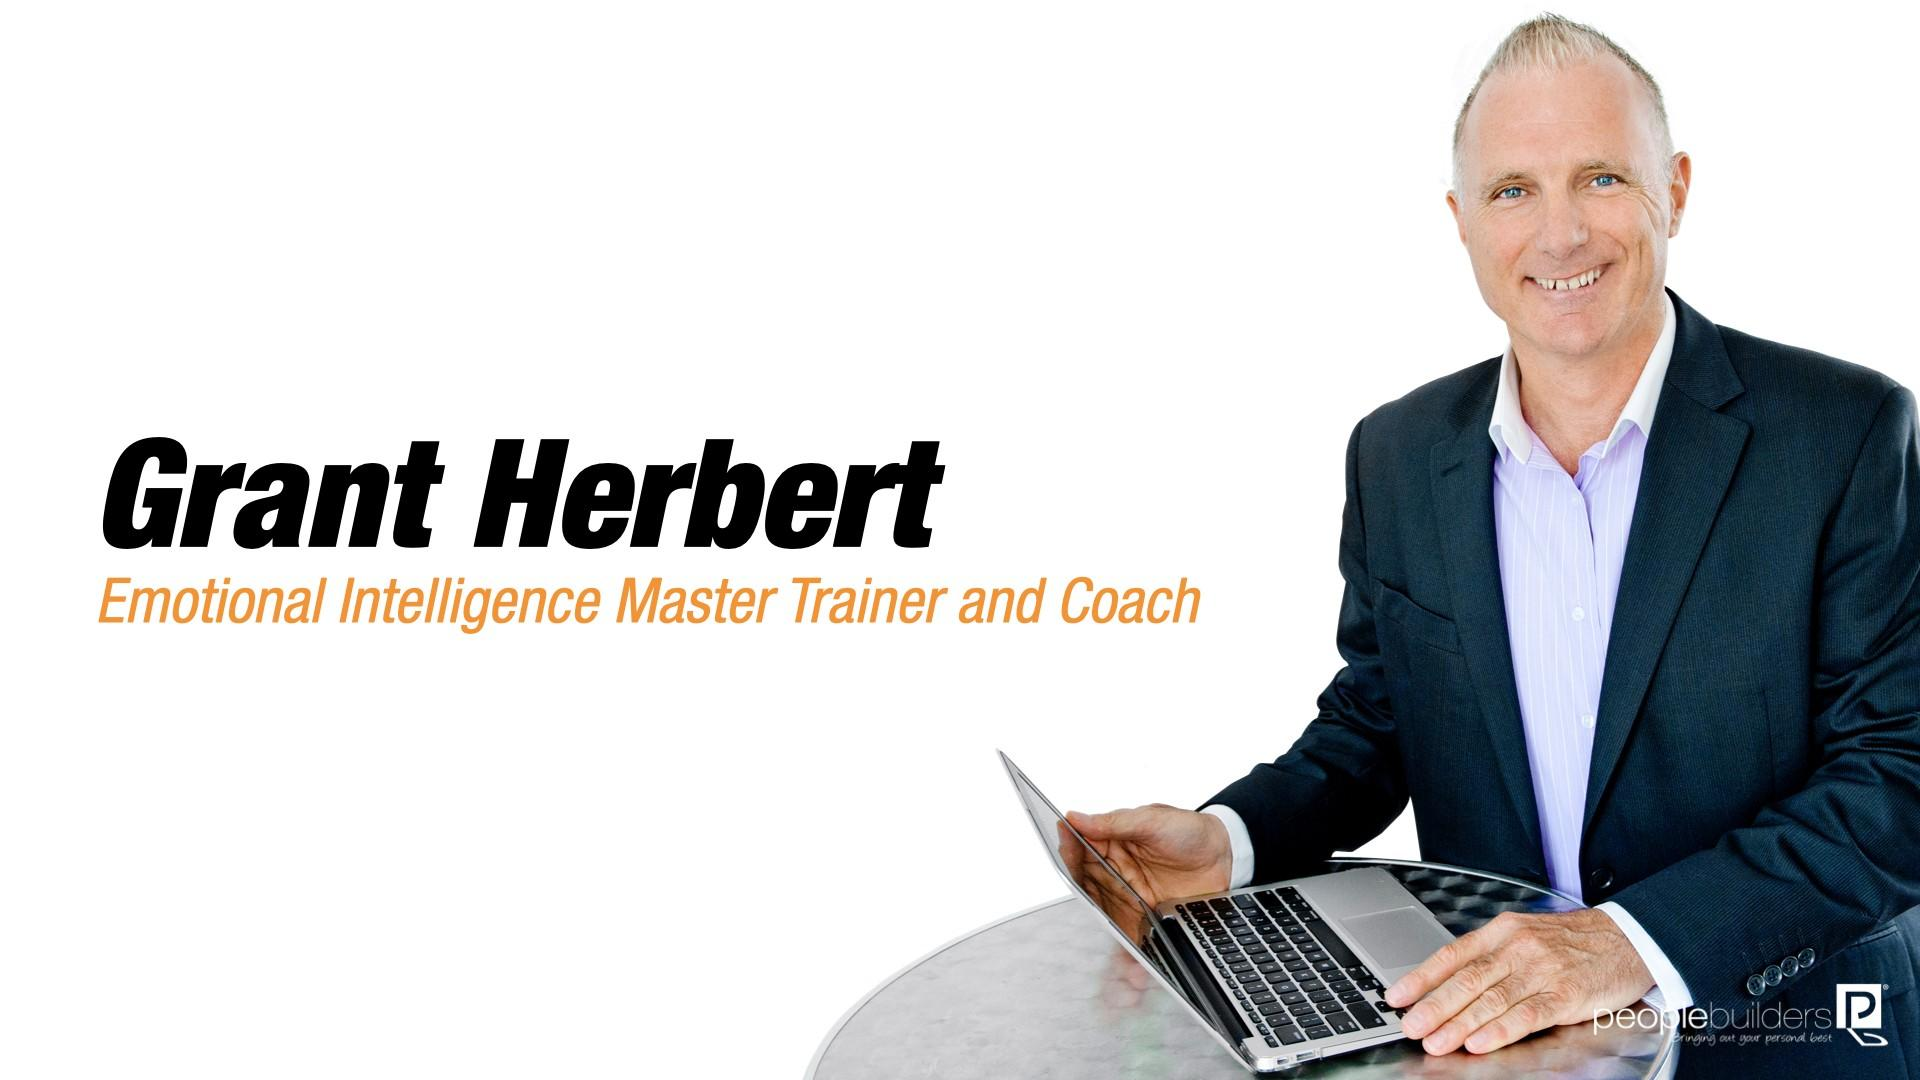 Grant Herbert Emotional Intelligence Master Trainer and Coach